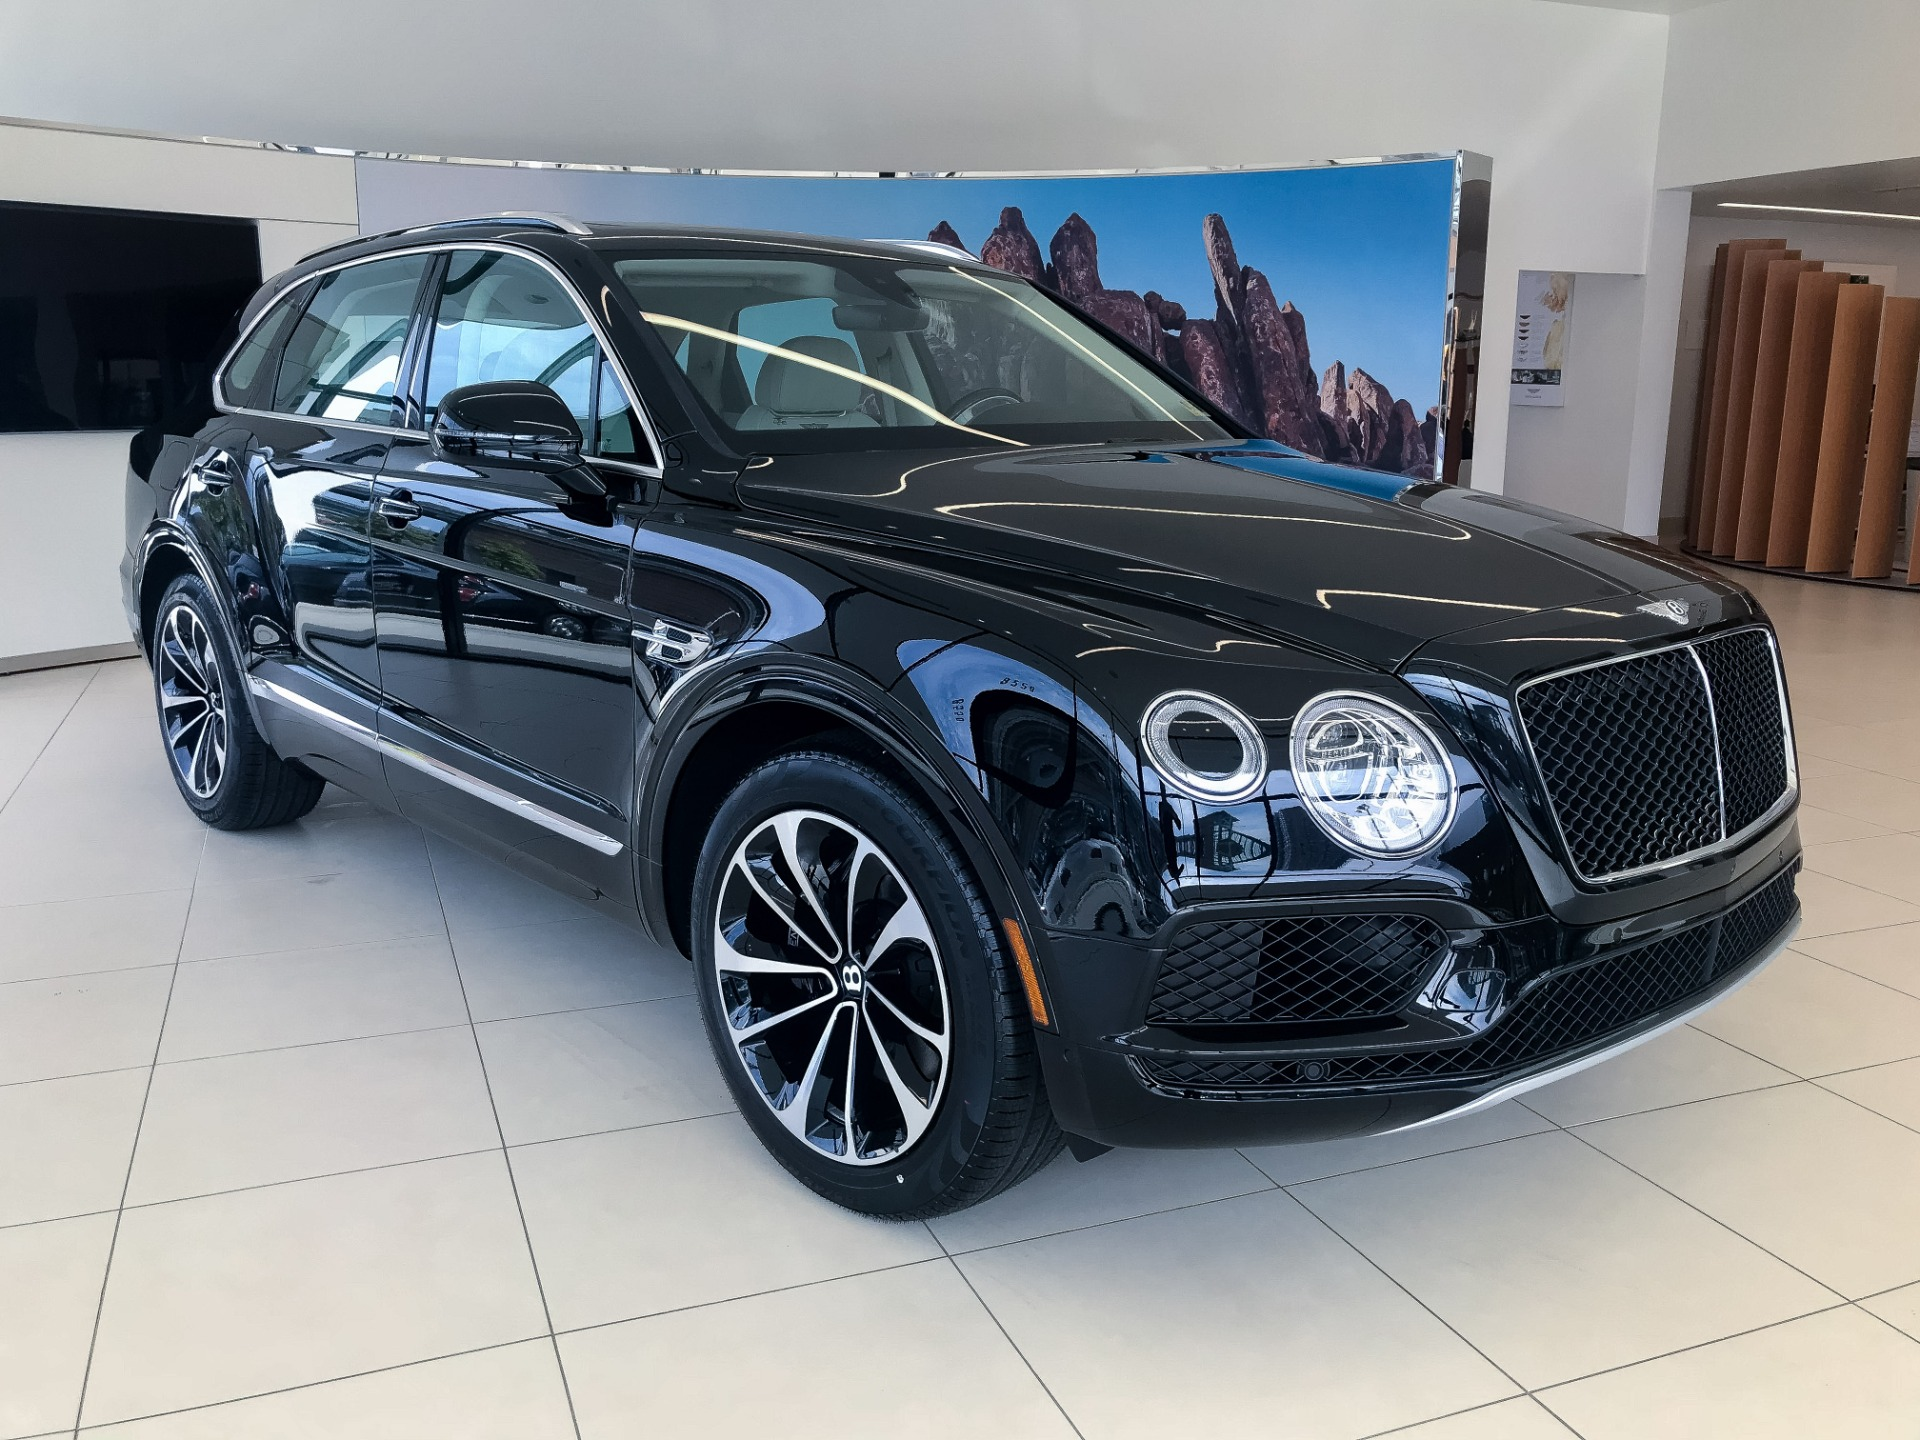 Bentley Bentayga For Sale >> 2019 Bentley Bentayga V8 Stock 9n024517 For Sale Near